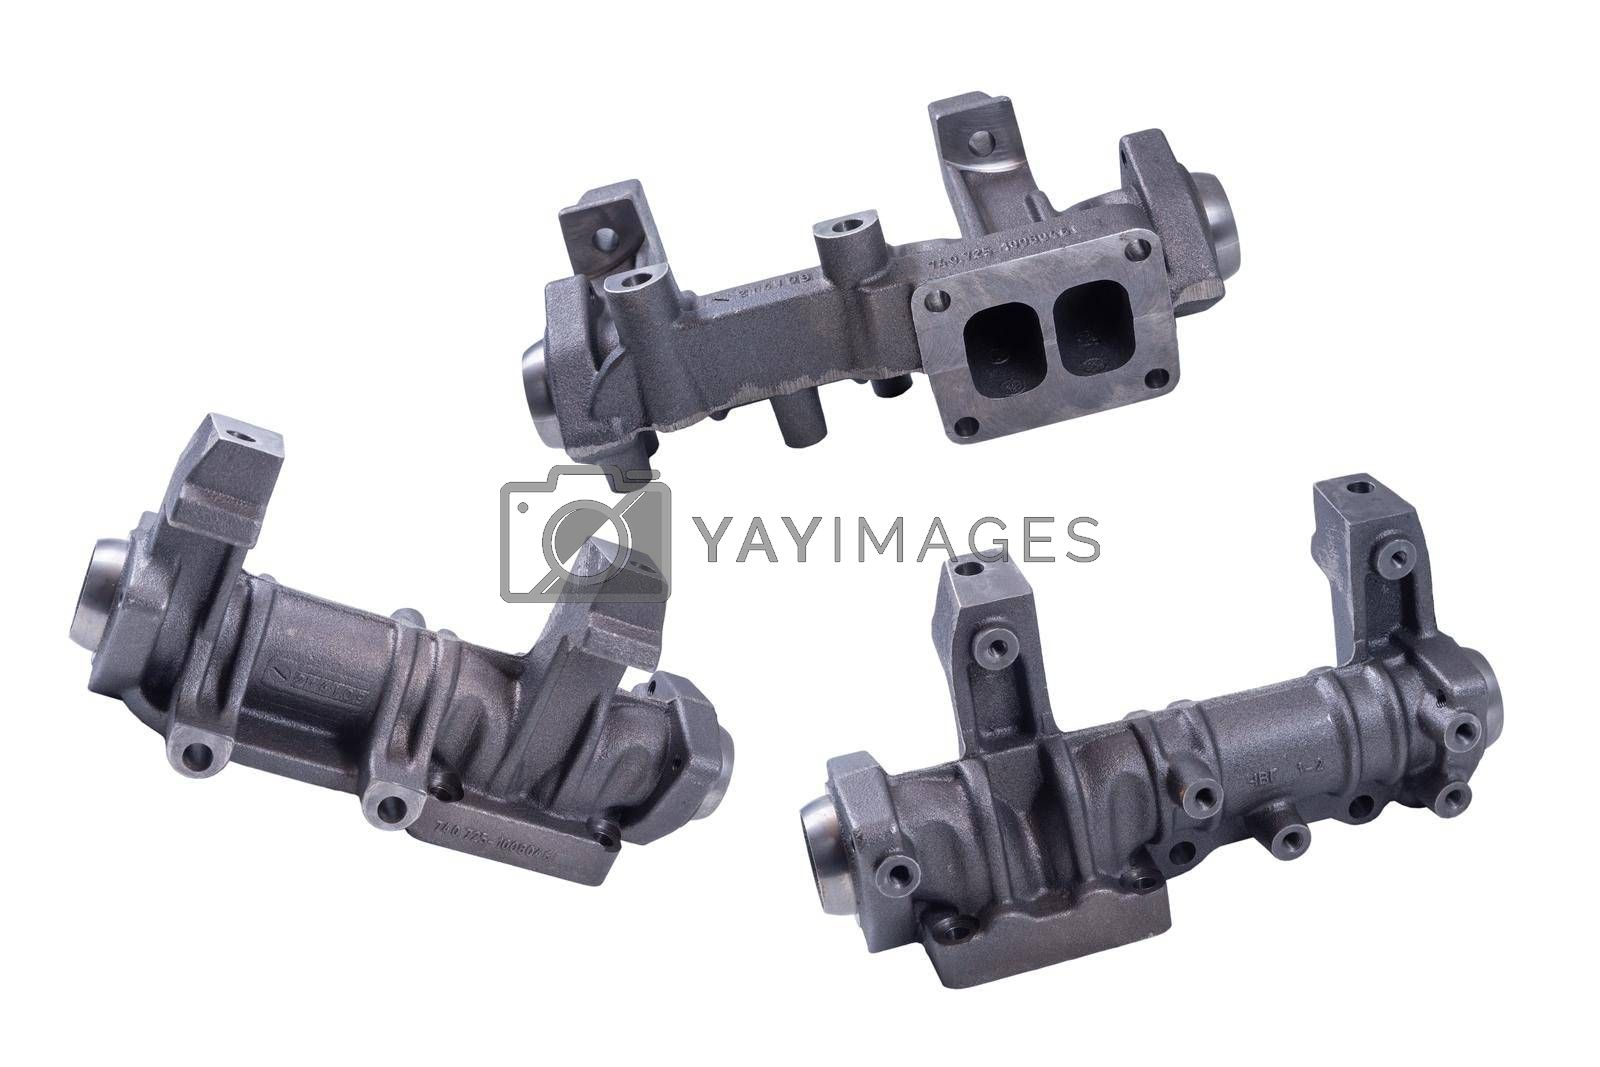 new exhaust manifold of a car on a white background. The front part of the exhaust system of the internal combustion engine exhaust gas.